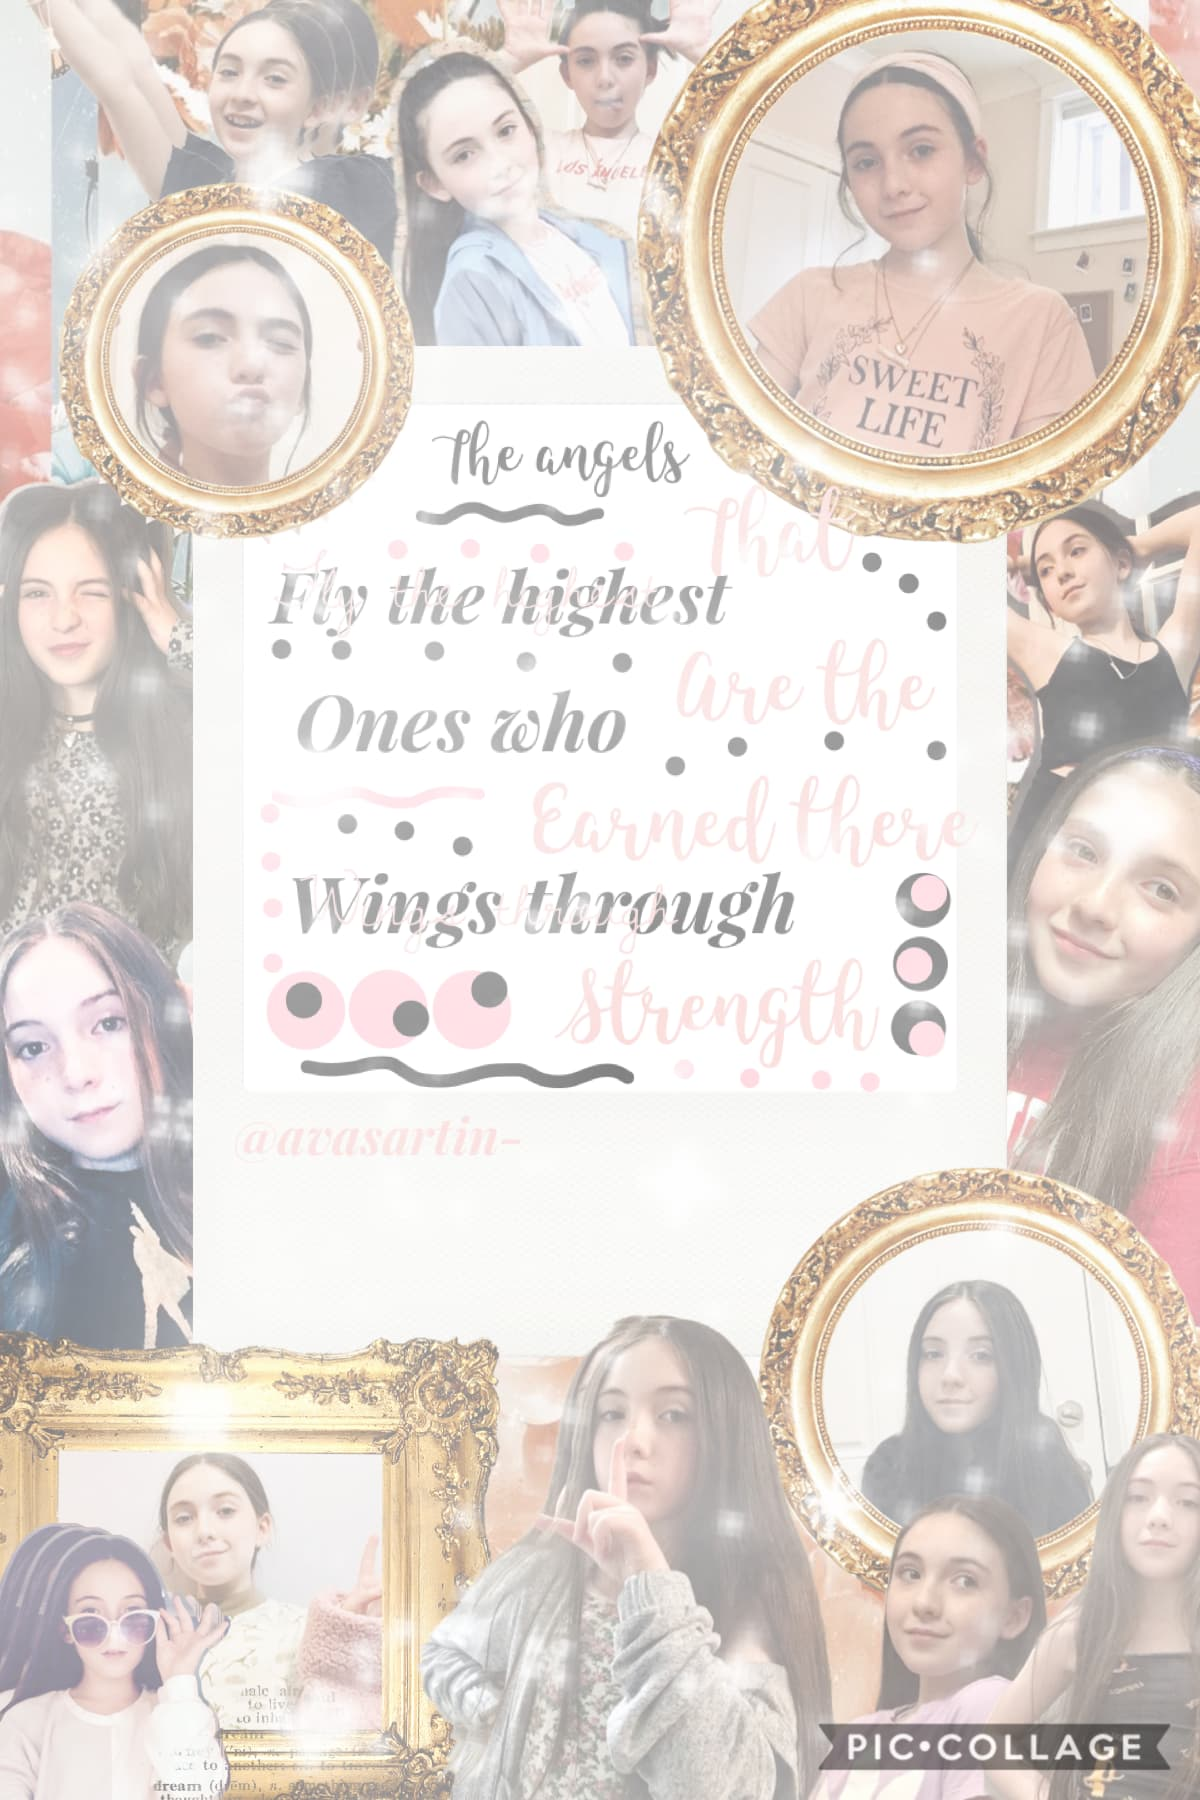 Hey bells!! Its sadie!! I just made this @avasartin edit for her giveaway⭐️ Ava is so amazing pls go follow her and enter her giveaway😘 OMG THIS TOOK ME 3-4 HOURS PLEEEASE DONT LET THIS FLOP😂